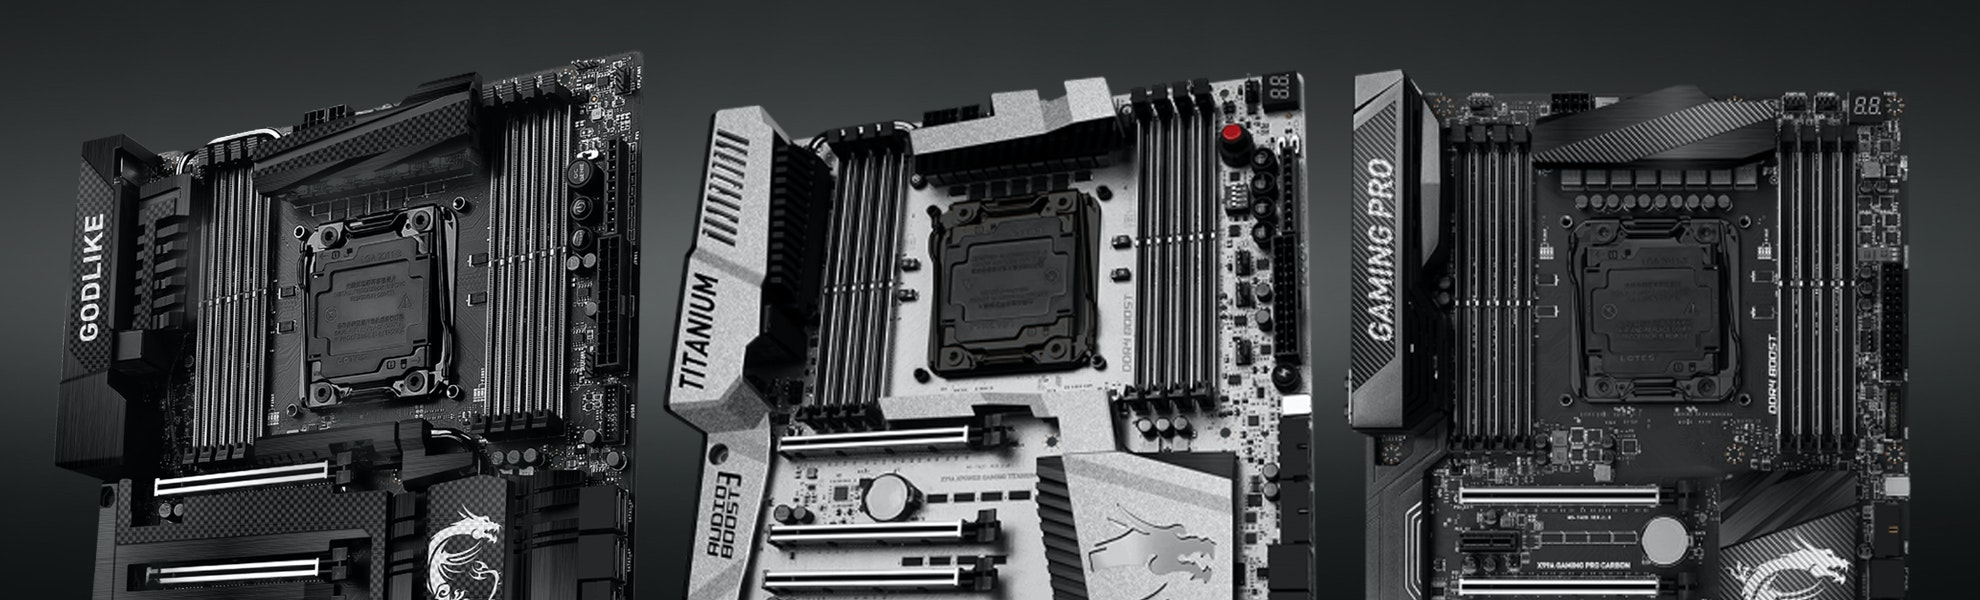 MSI X99A Godlike Gaming Carbon Motherboard